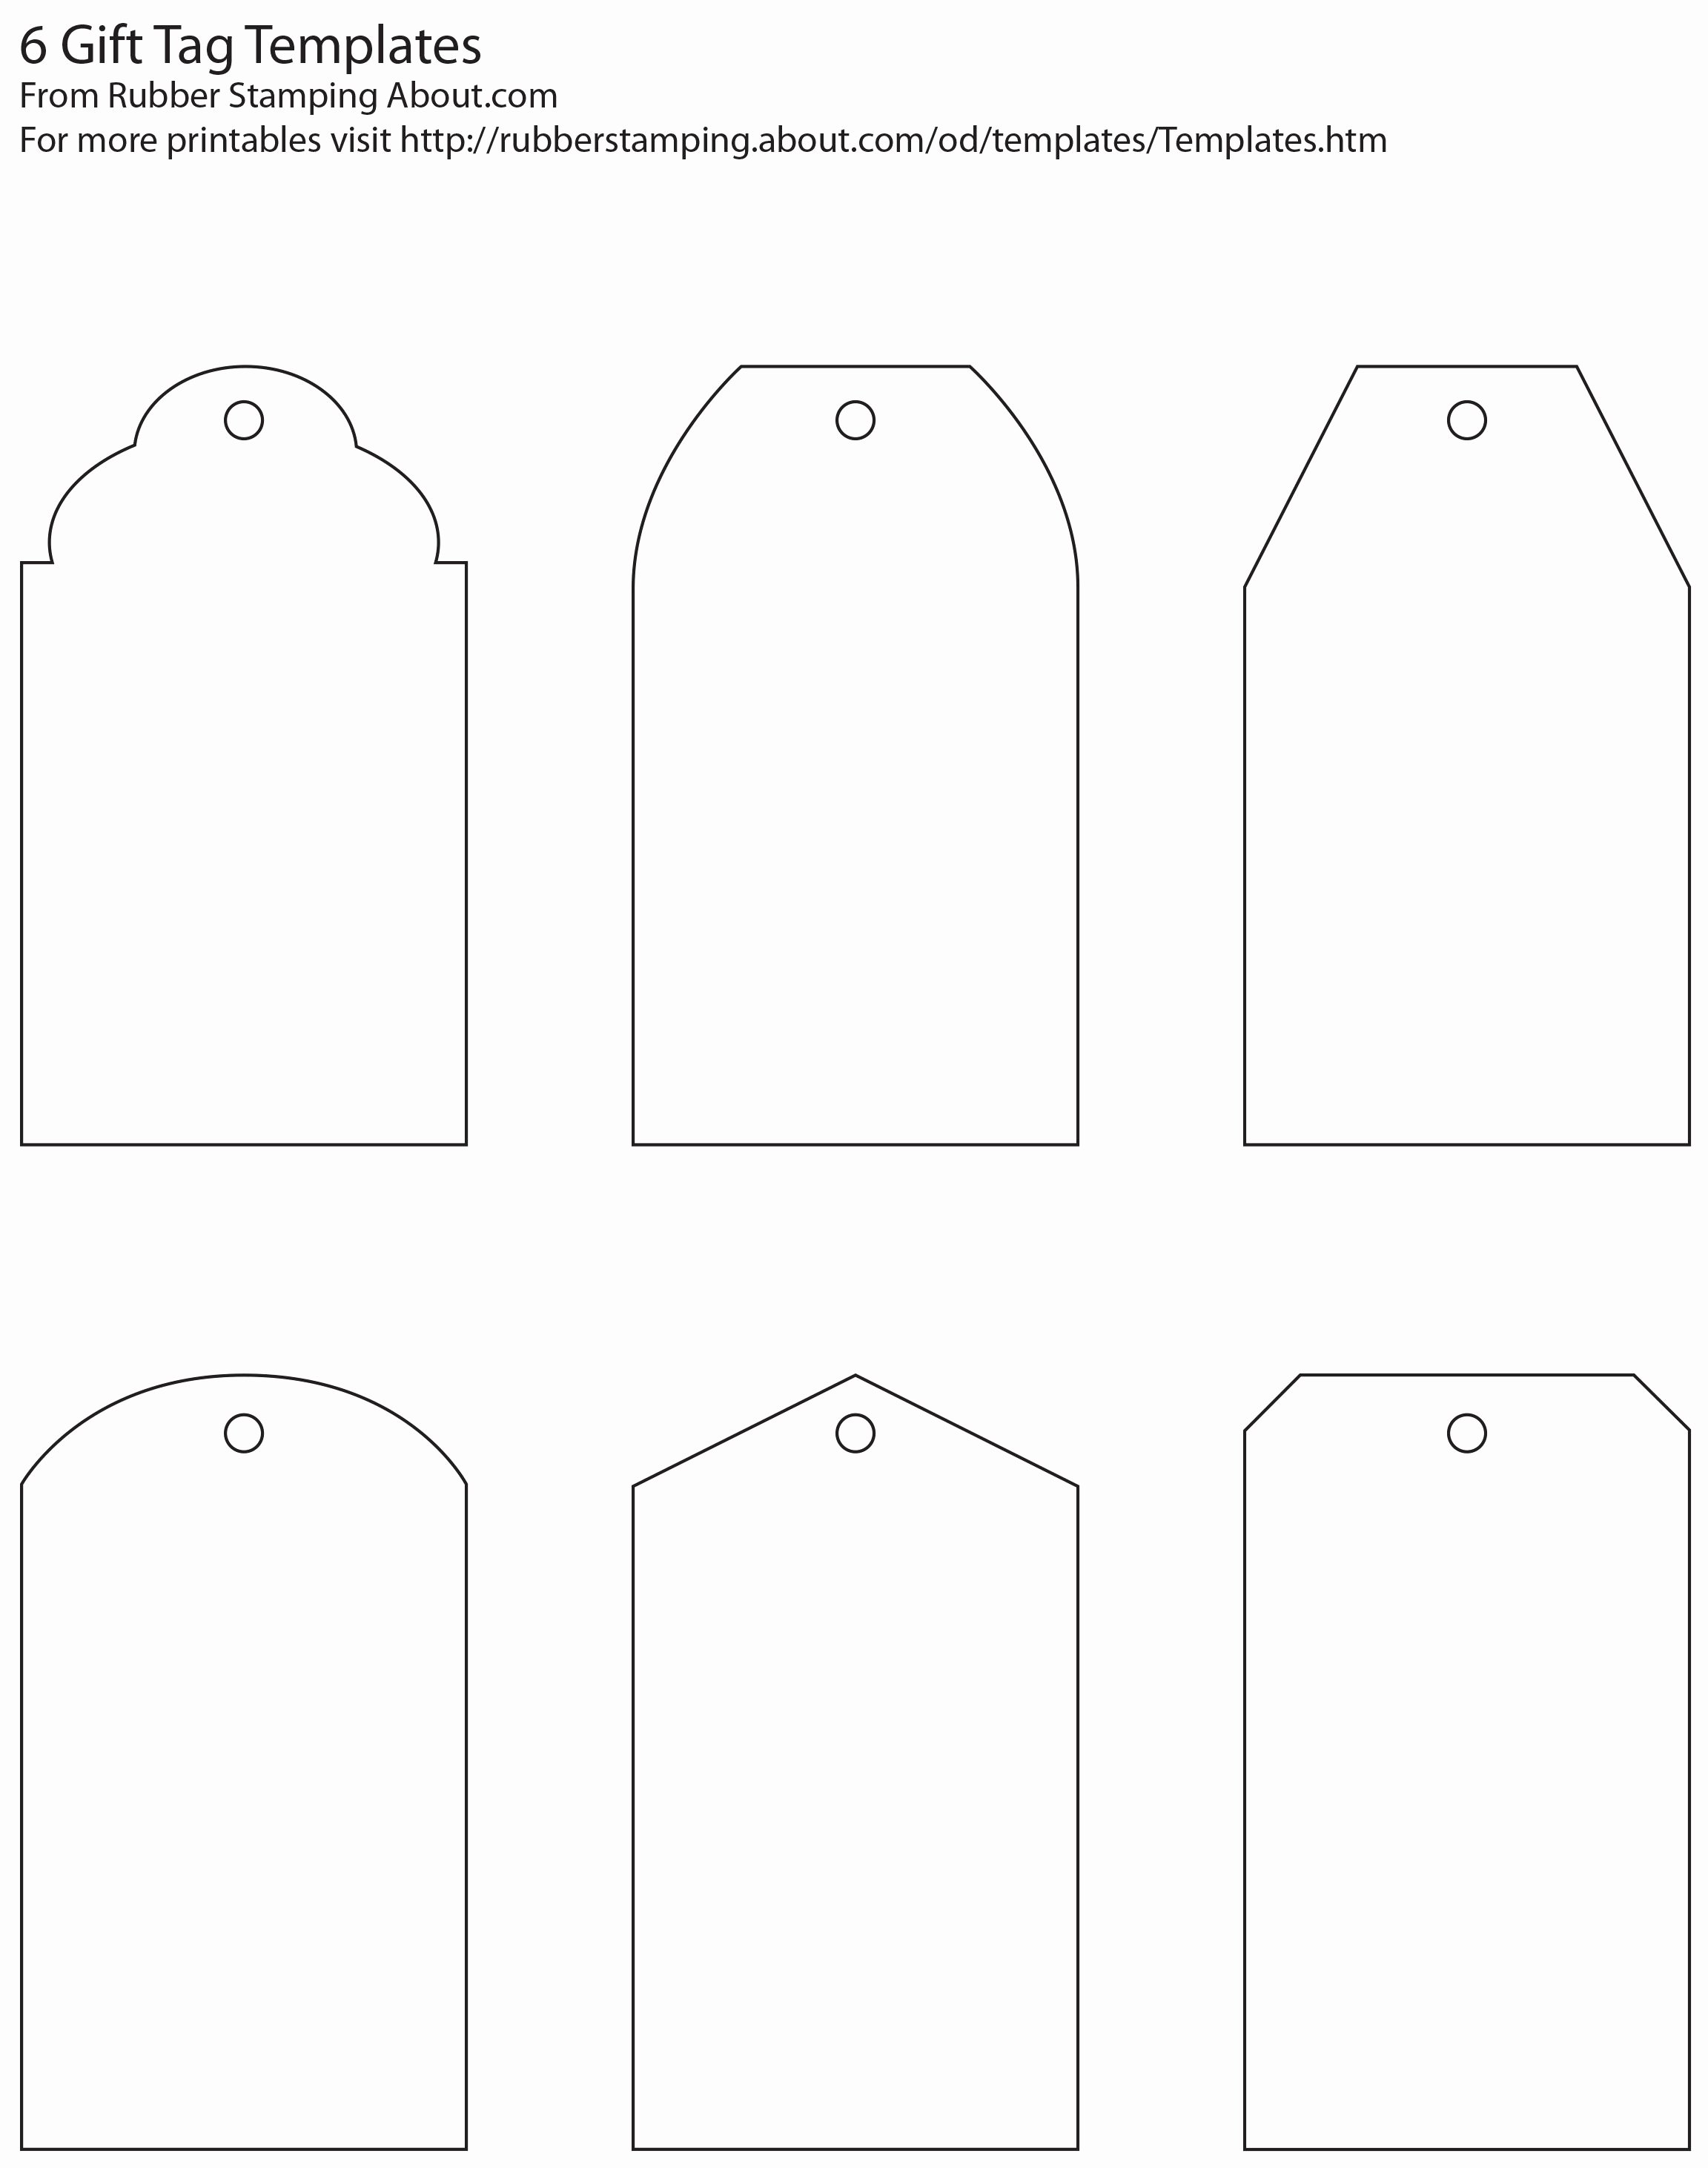 Price Tag Template Printable Luxury Make Your Own Custom Gift Tags with these Free Printable